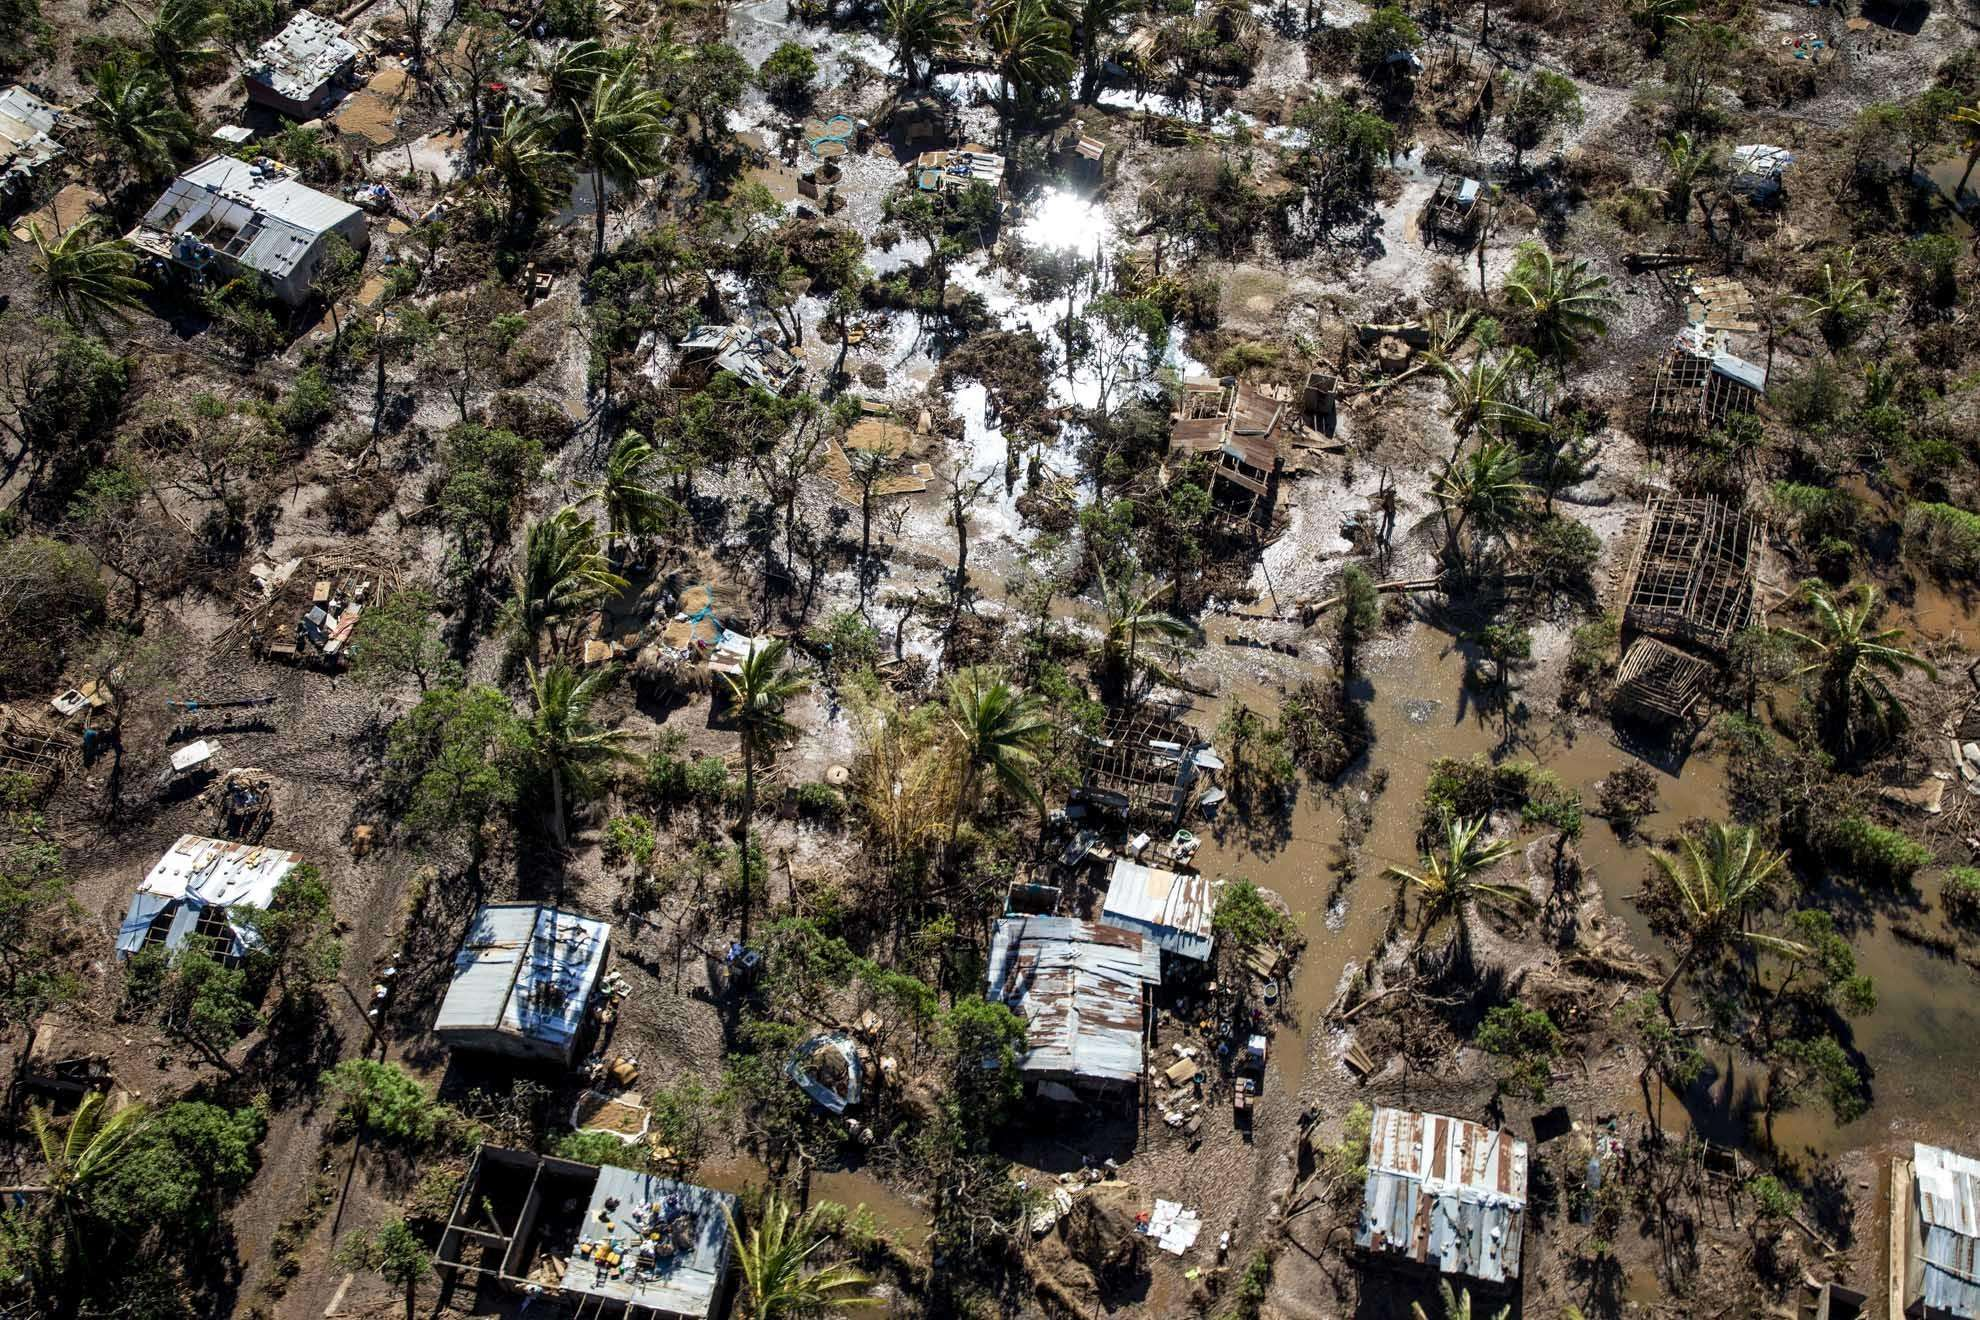 From emergency to recovery: Mozambique one month after Cyclone Idai